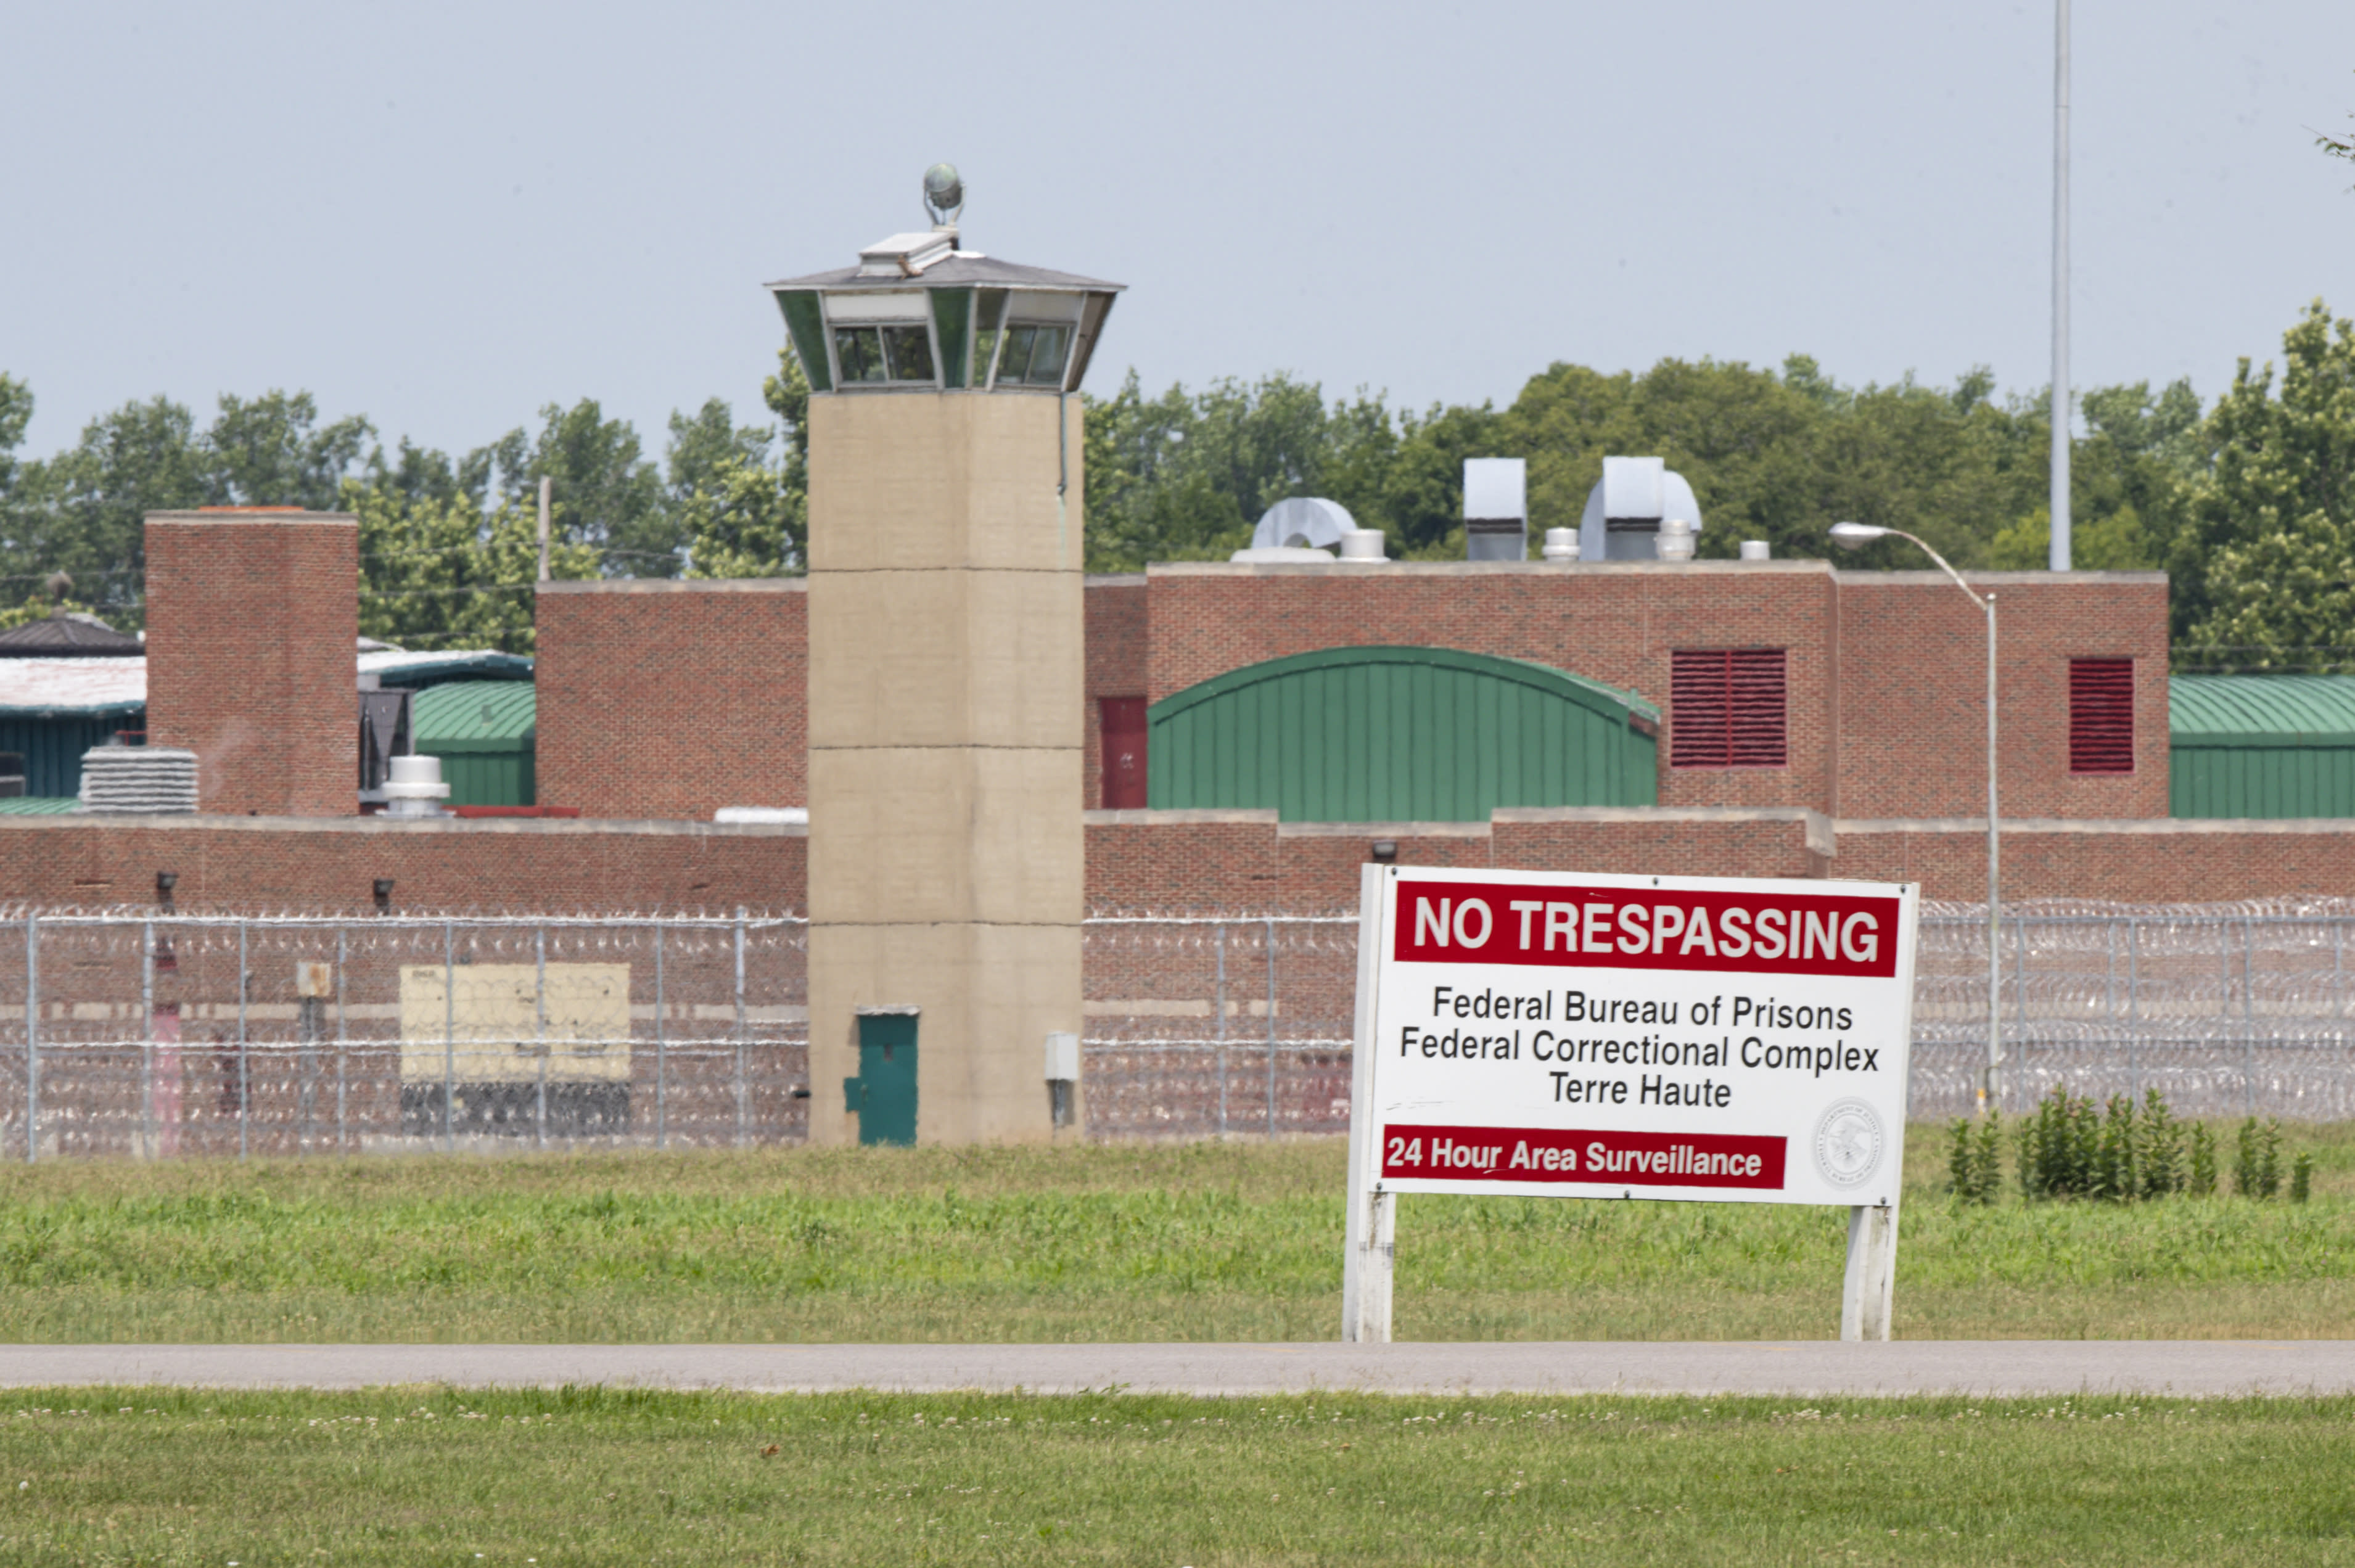 The entrance to the federal prison in Terre Haute, Ind., is seen Wednesday, July 15, 2020. Wesley Ira Purkey, convicted of a gruesome 1998 kidnapping and killing, is scheduled to be executed Wednesday evening at the prison. (AP Photo/Michael Conroy)